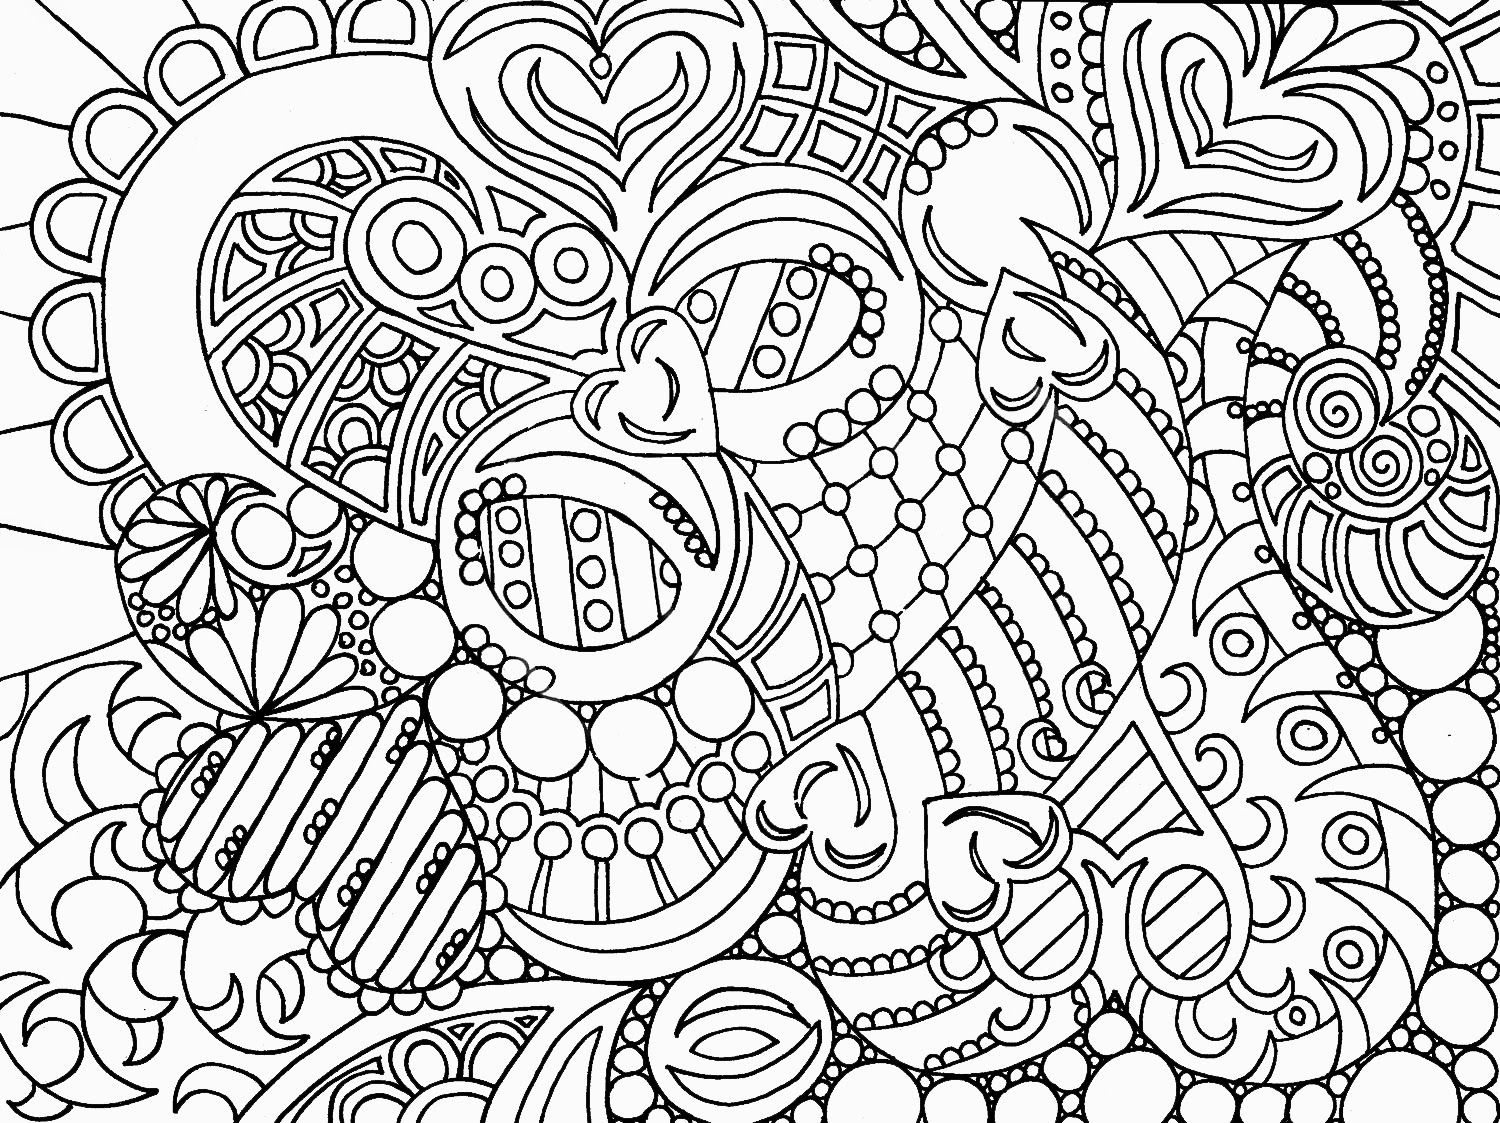 Coloring Pages Coloring Pages Art 1000 images about coloring sheets on pinterest hidden pictures and adult pages